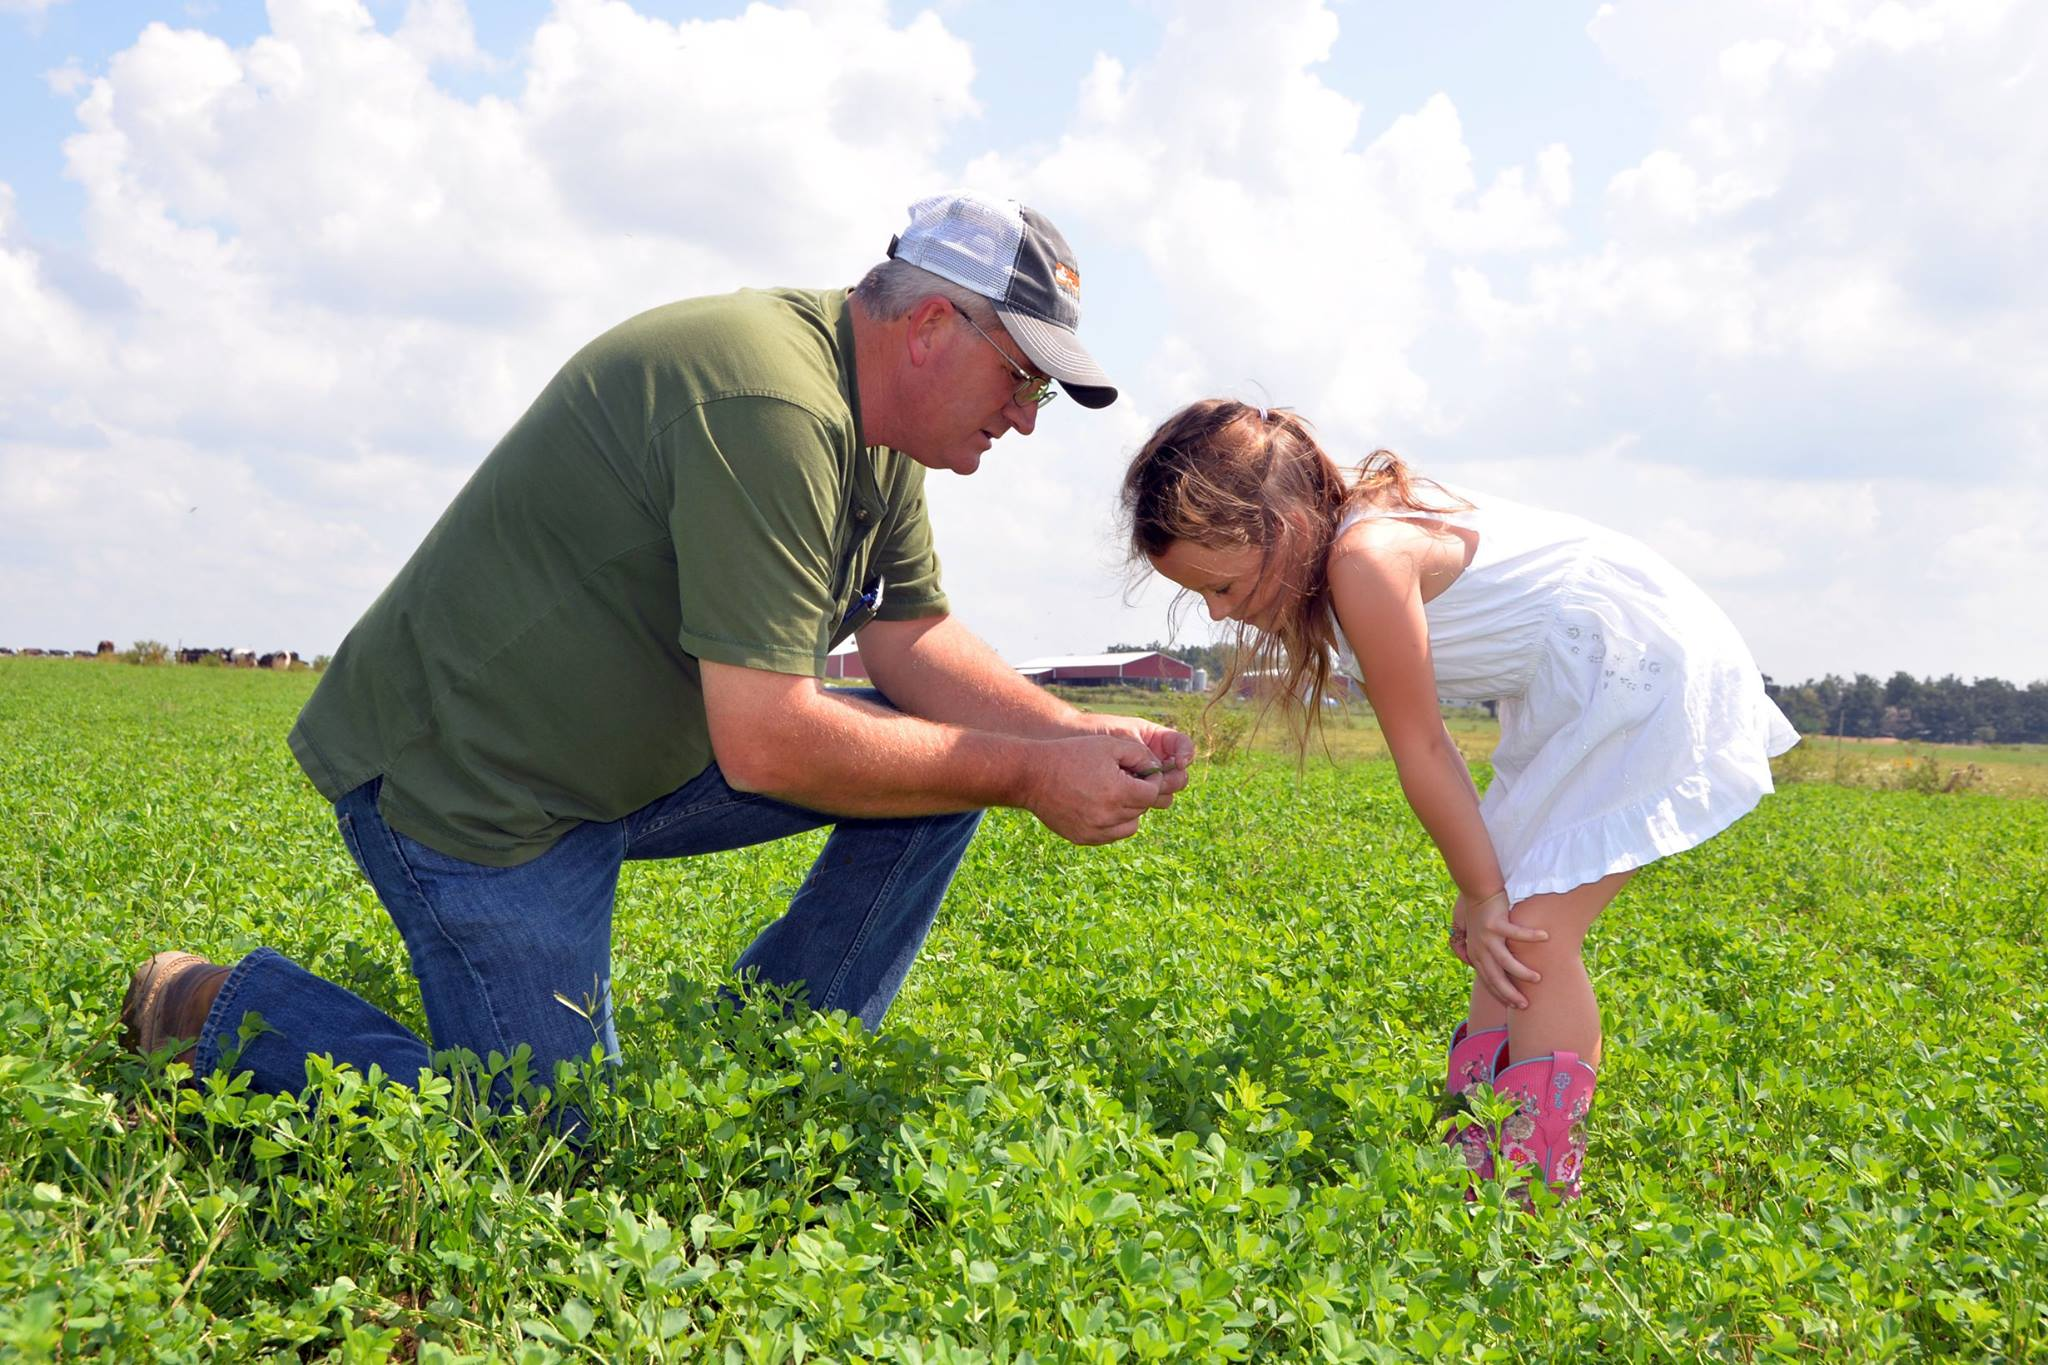 Charles Fletcher of Edgewood Dairy and Creamery tells his granddaughter about the value of good grazing forage.